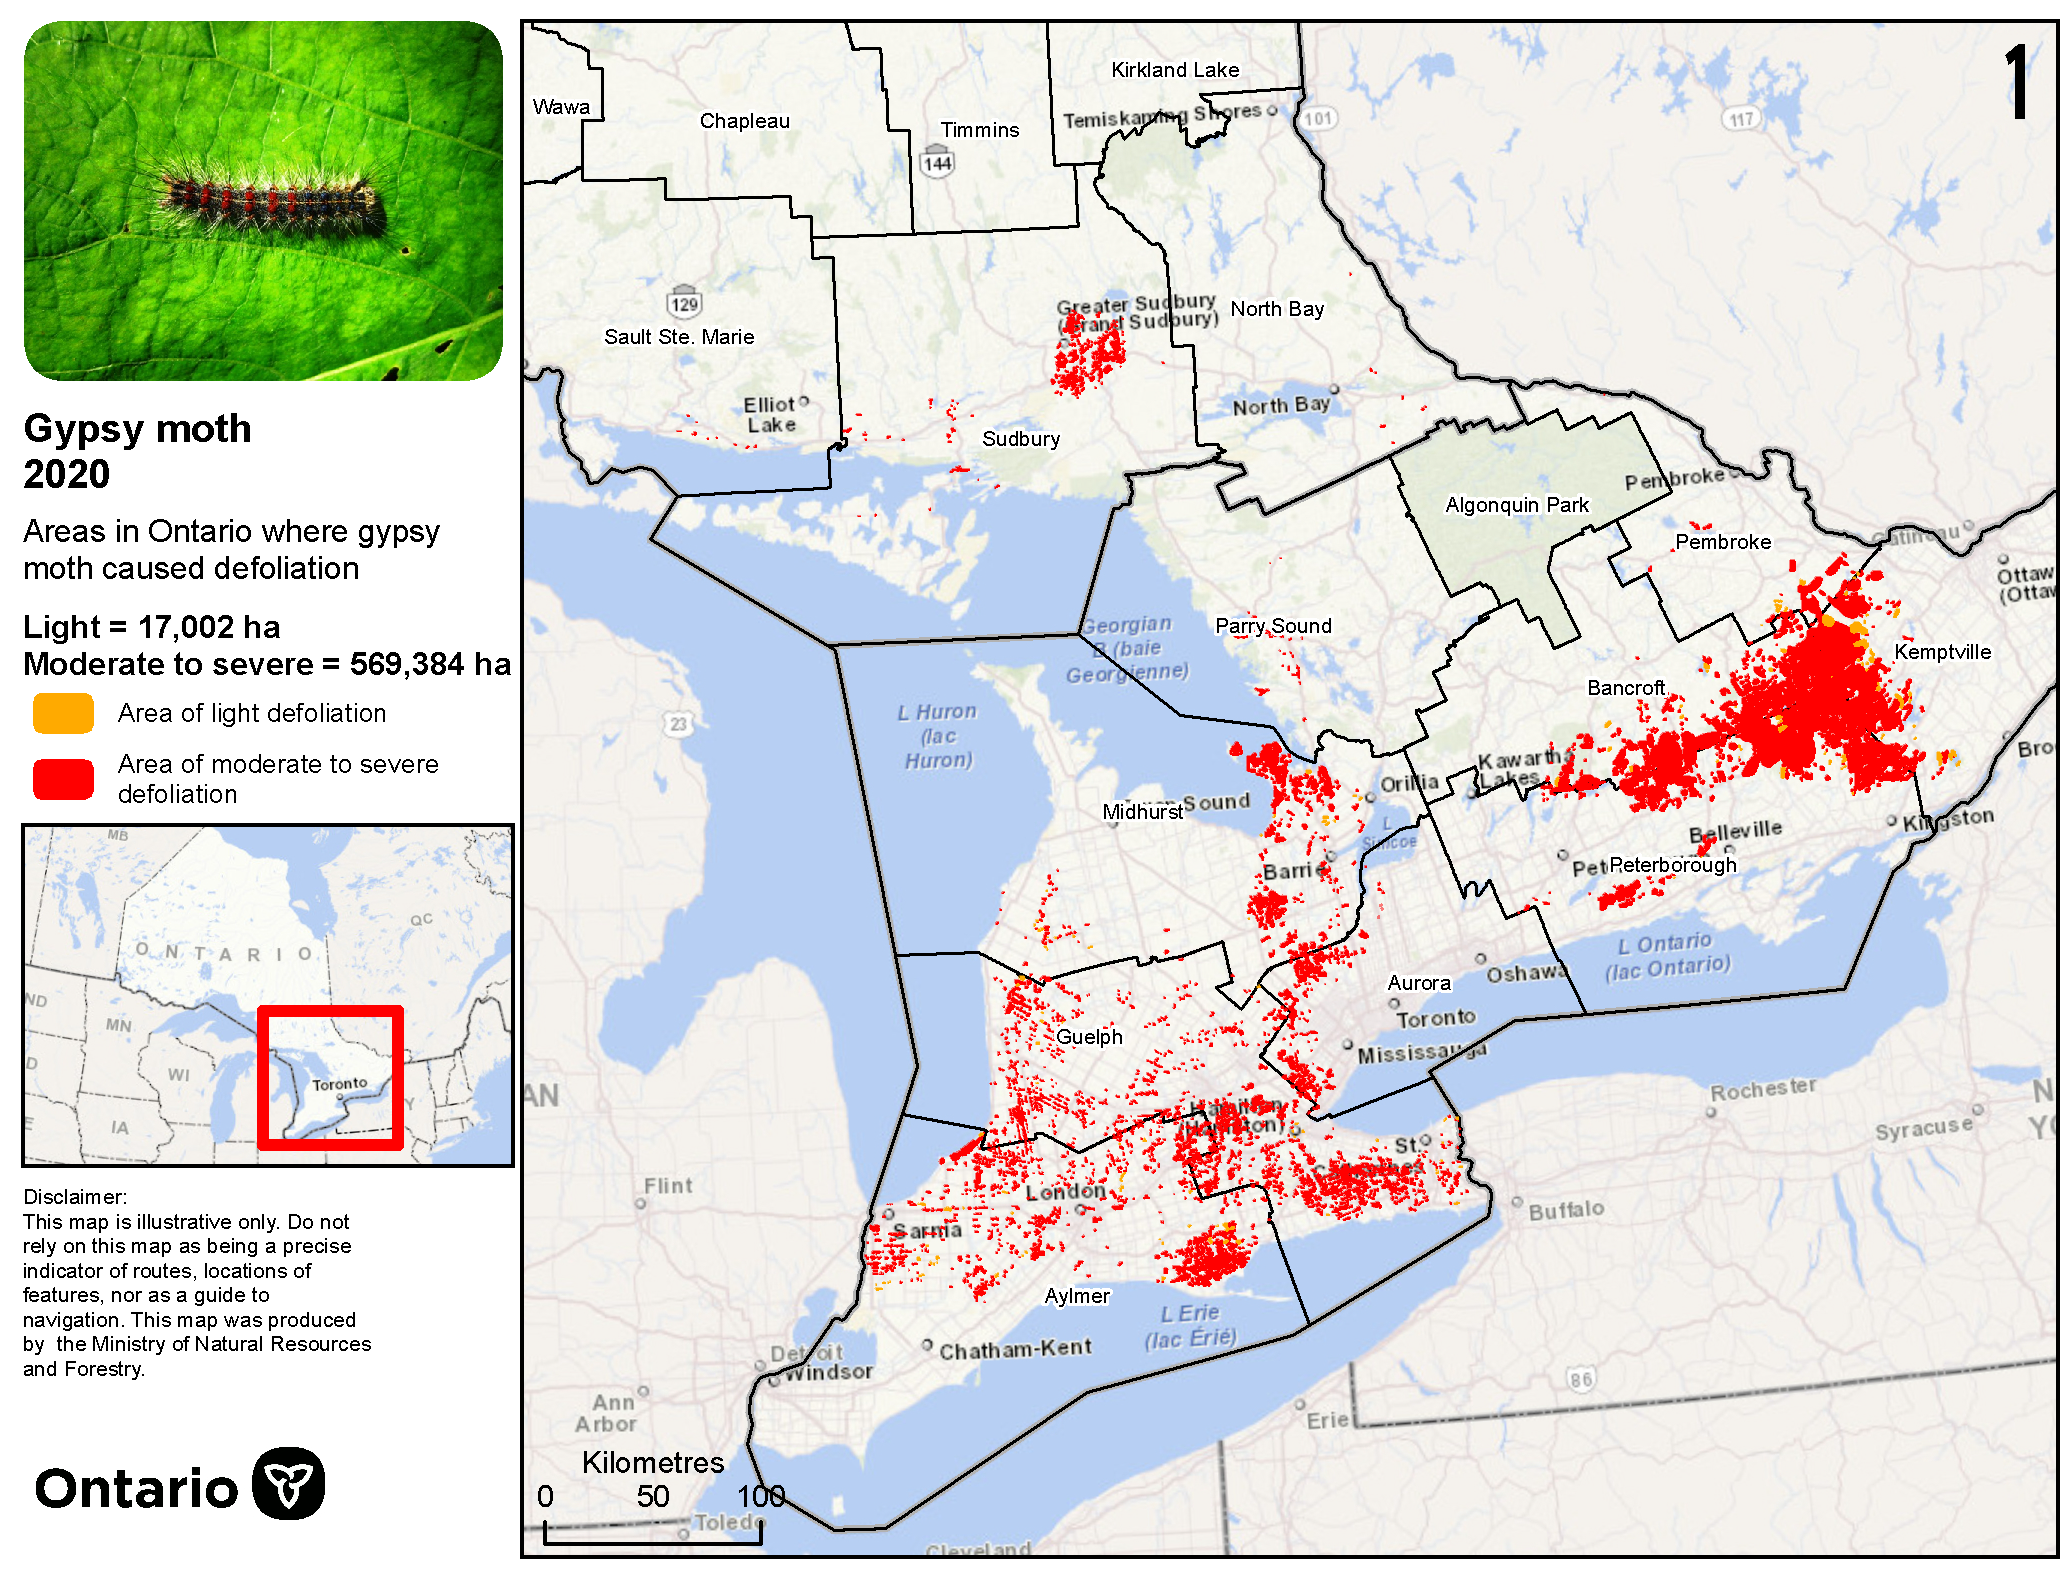 Map of northeast and southern Ontario, showing gypsy moth defoliation areas northwest of Sudbury, along the north shore of Lake Huron, and across much of southern Ontario.